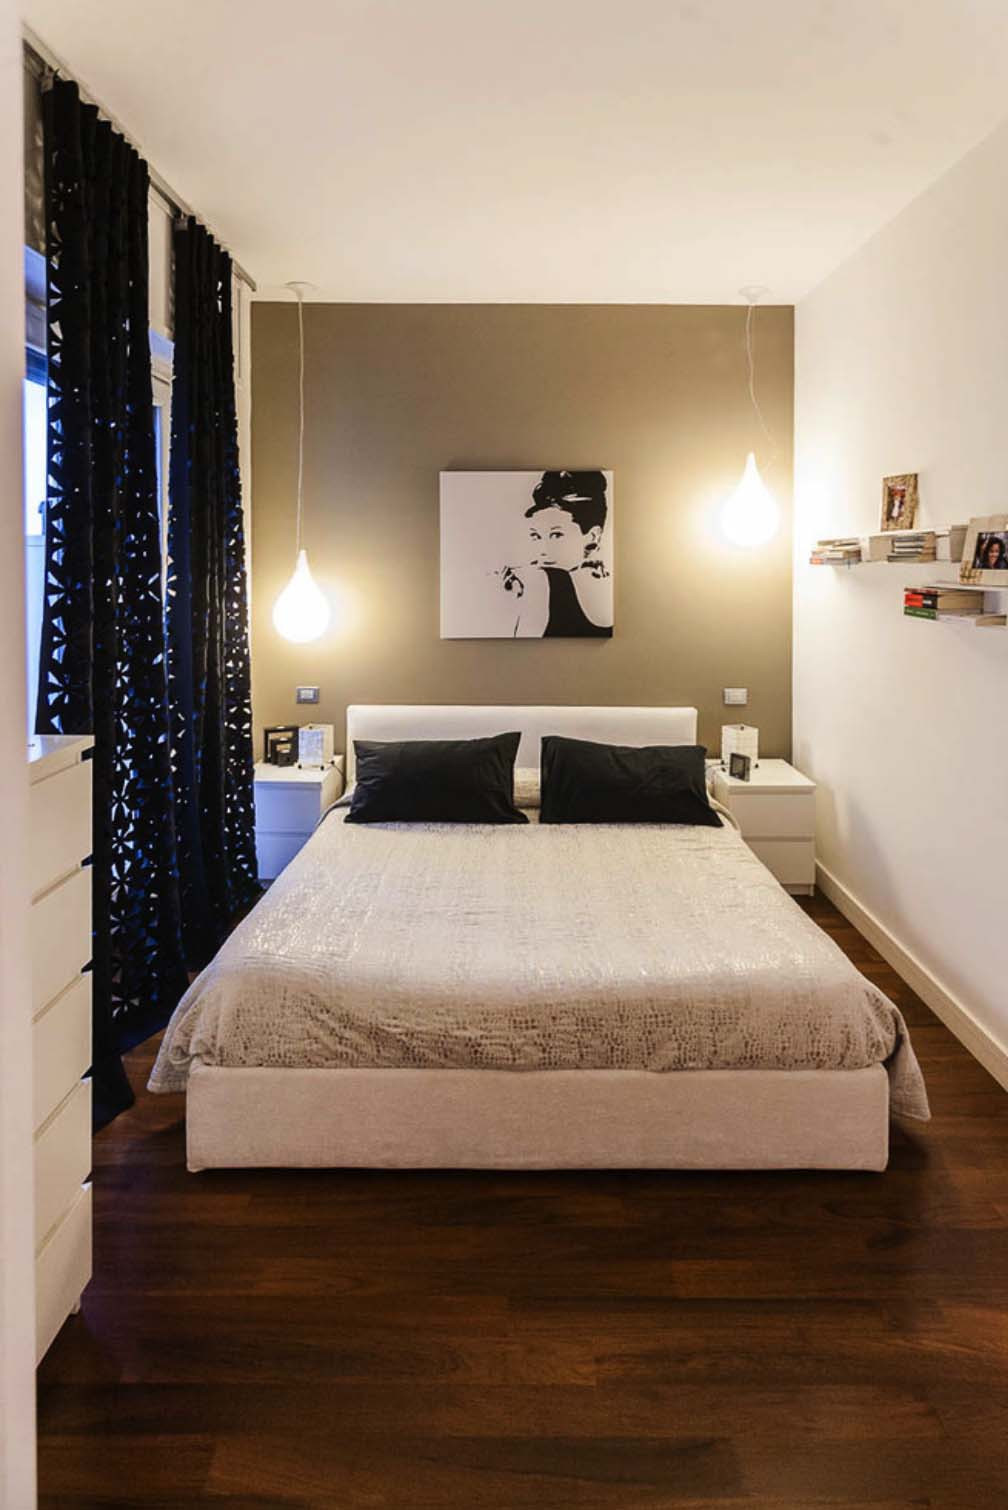 Best ideas about Small Bedroom Layout . Save or Pin 30 Small yet amazingly cozy master bedroom retreats Now.